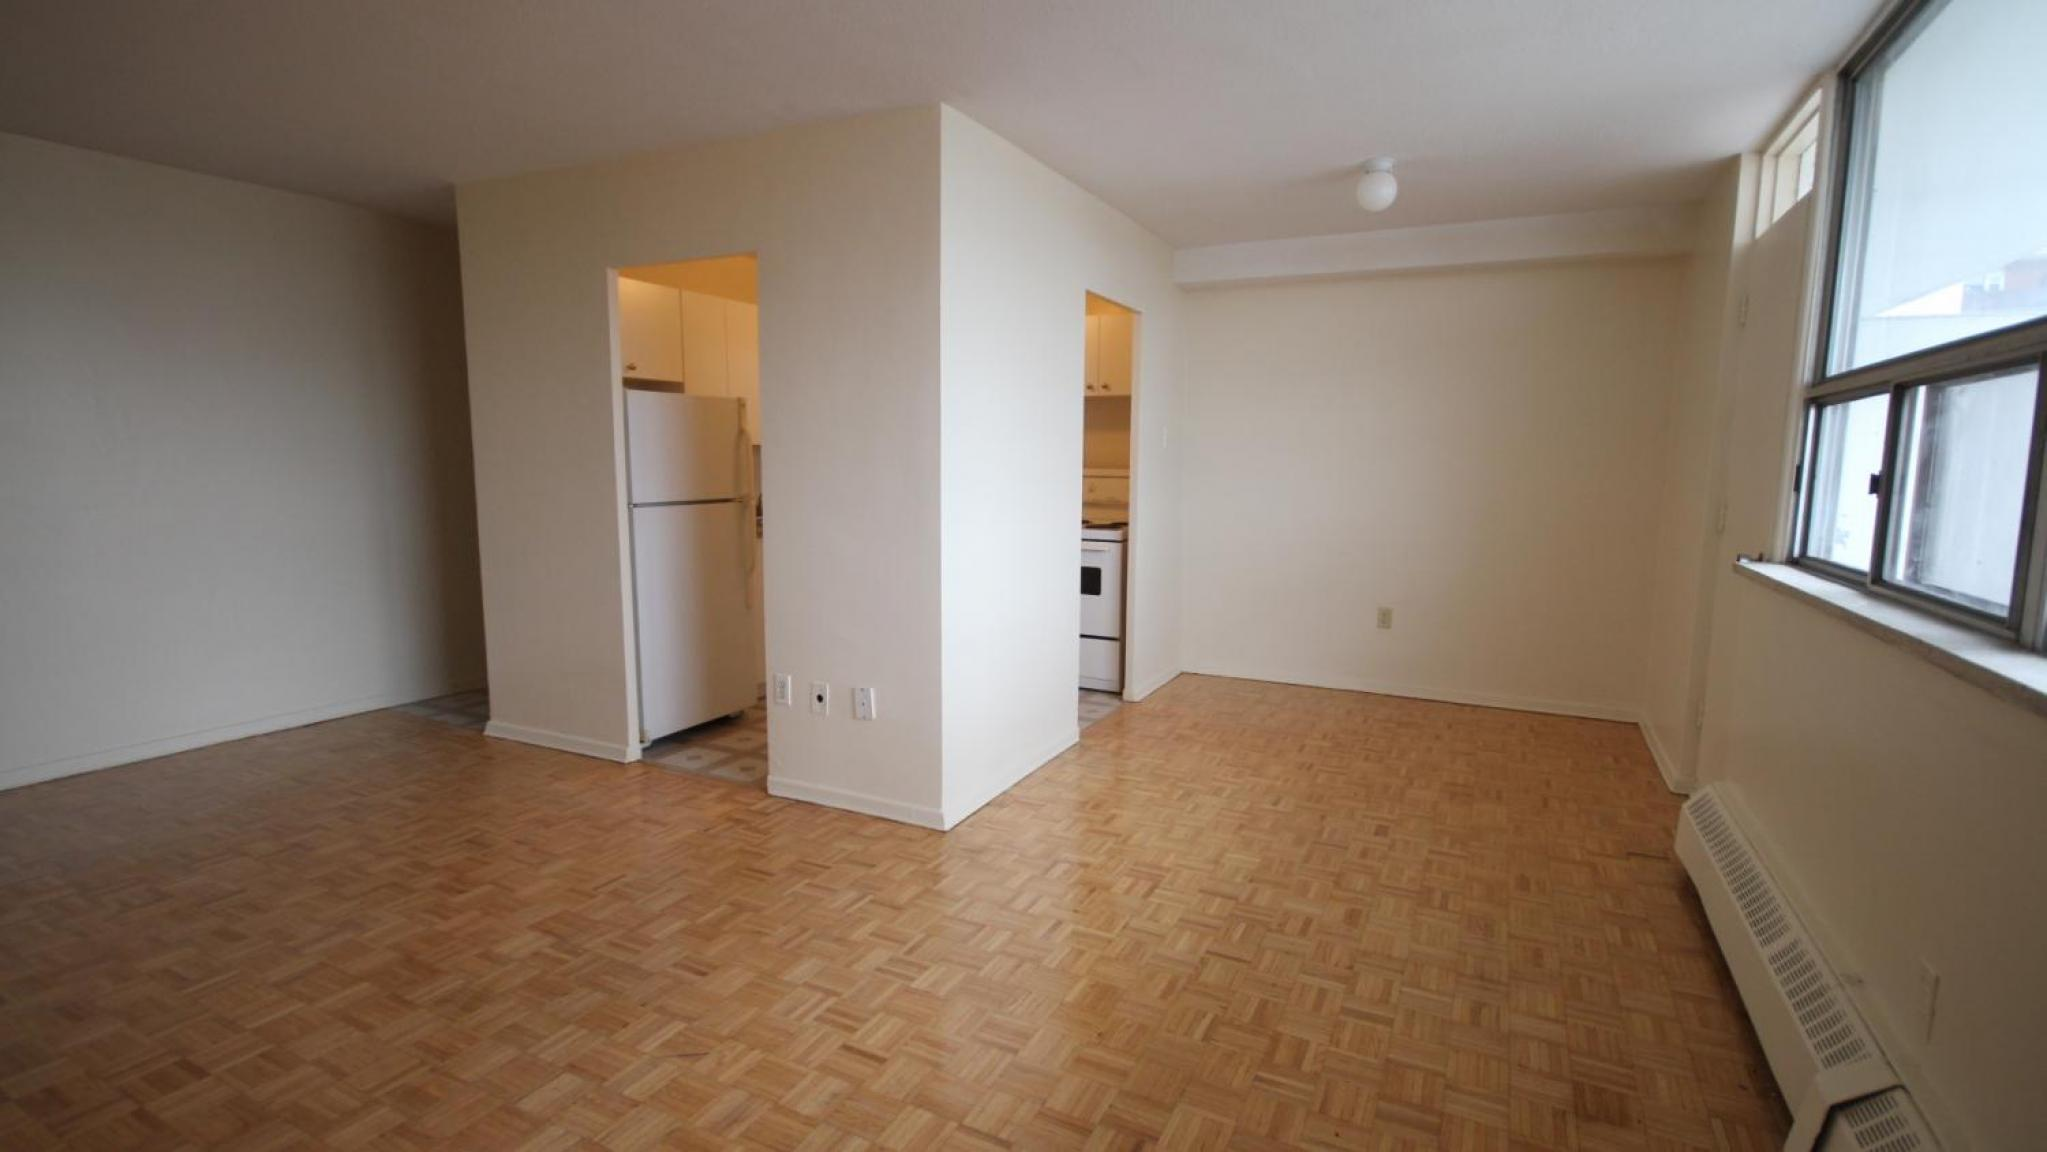 1301 dundas street w mississauga on l5c 1c9 for One bedroom apartment mississauga